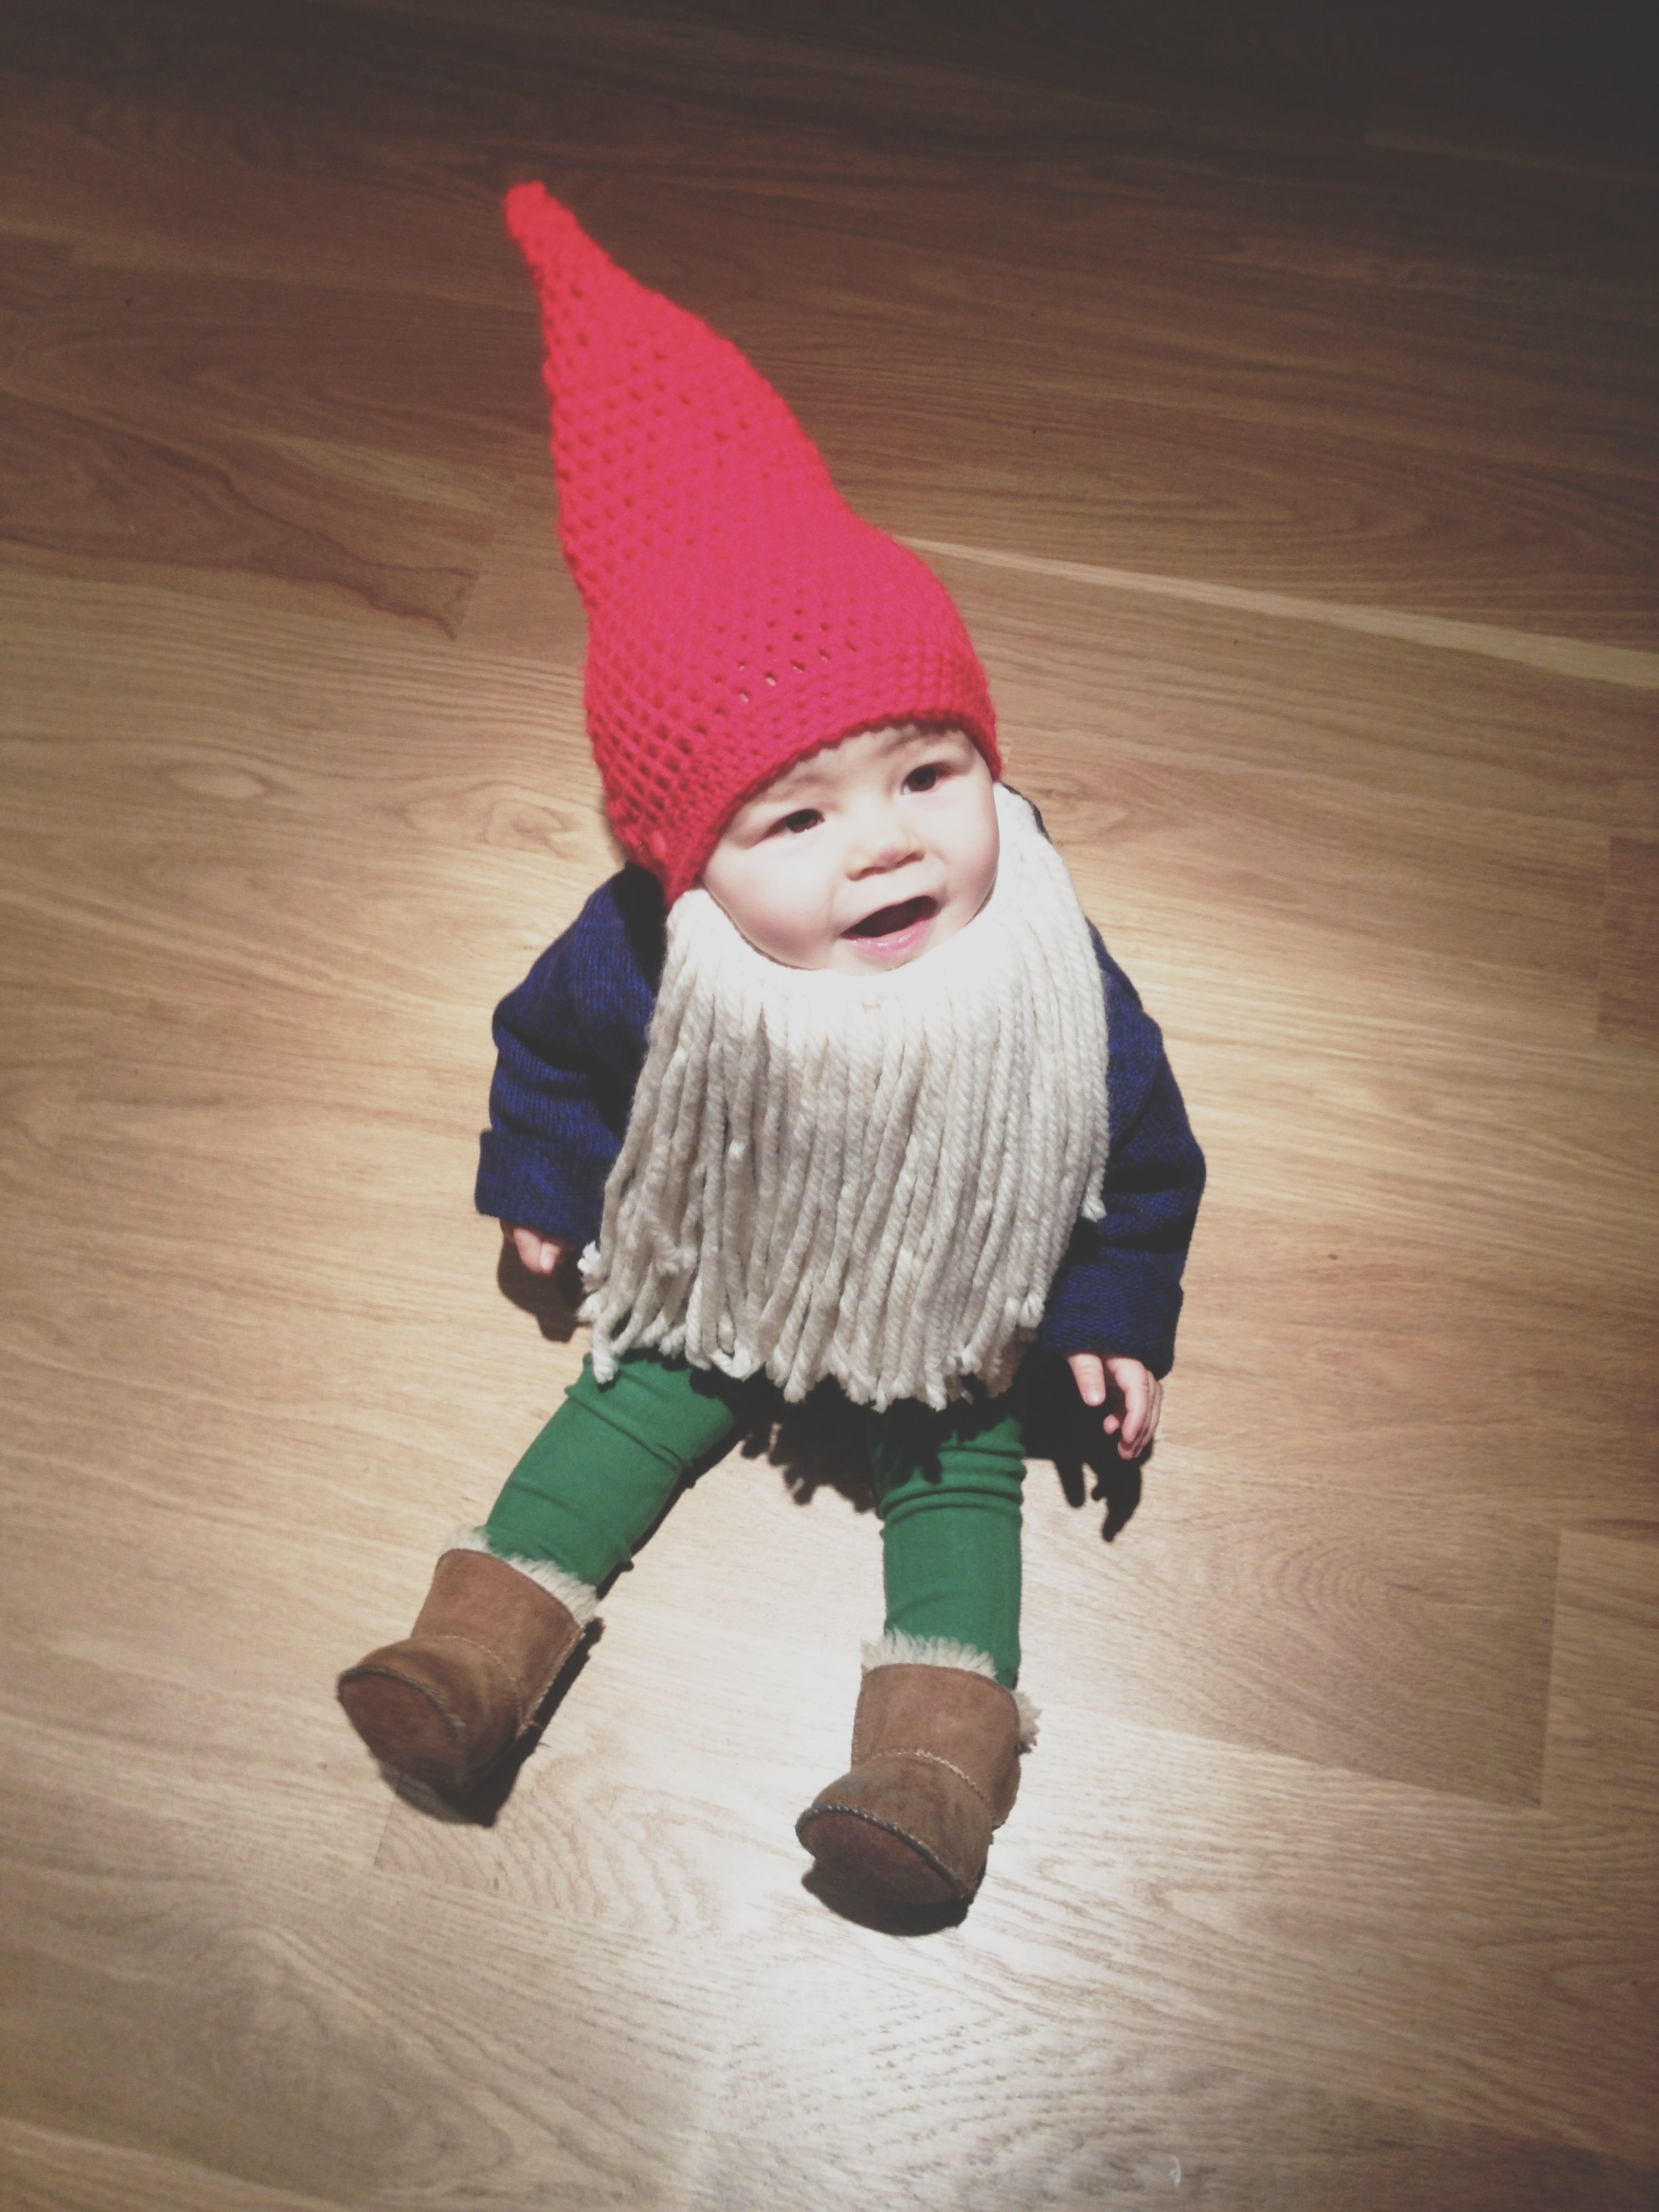 Baby Gnome: My Kids Will Be Forced Into This And They Will Look